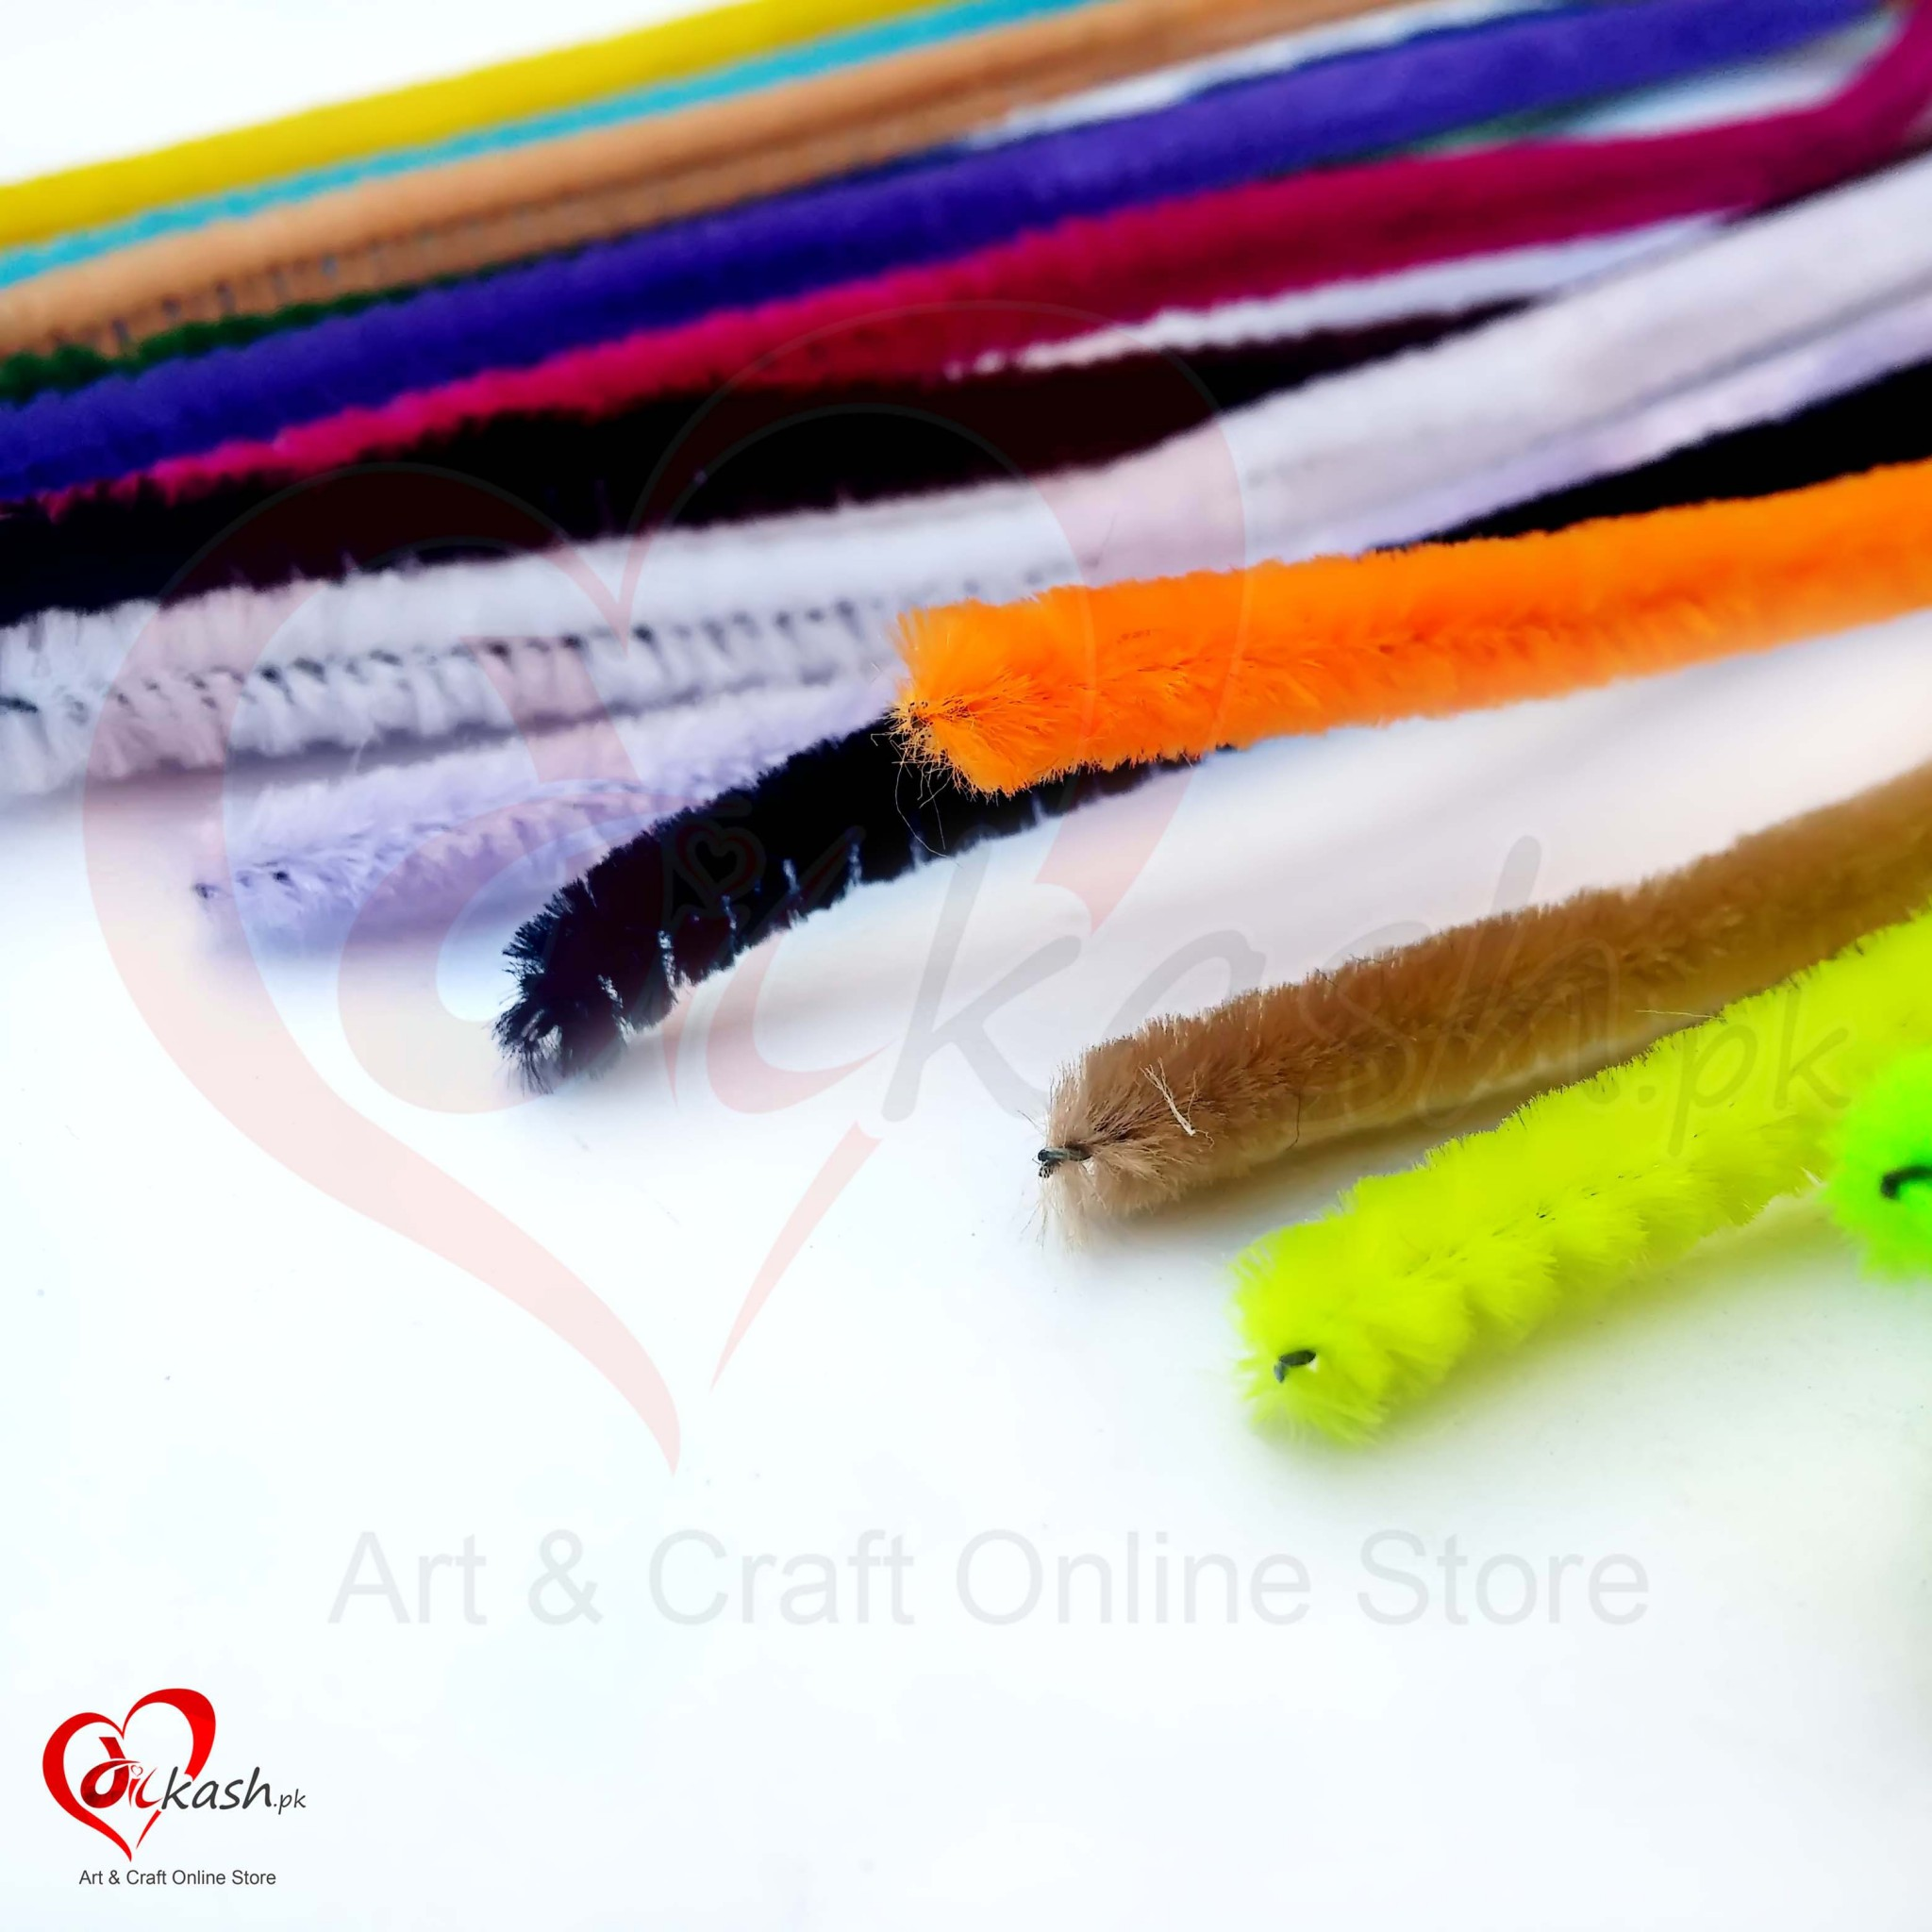 wires cleaner, pipe cleaners, pipe cleaner crafts, pipe cleaners crafts